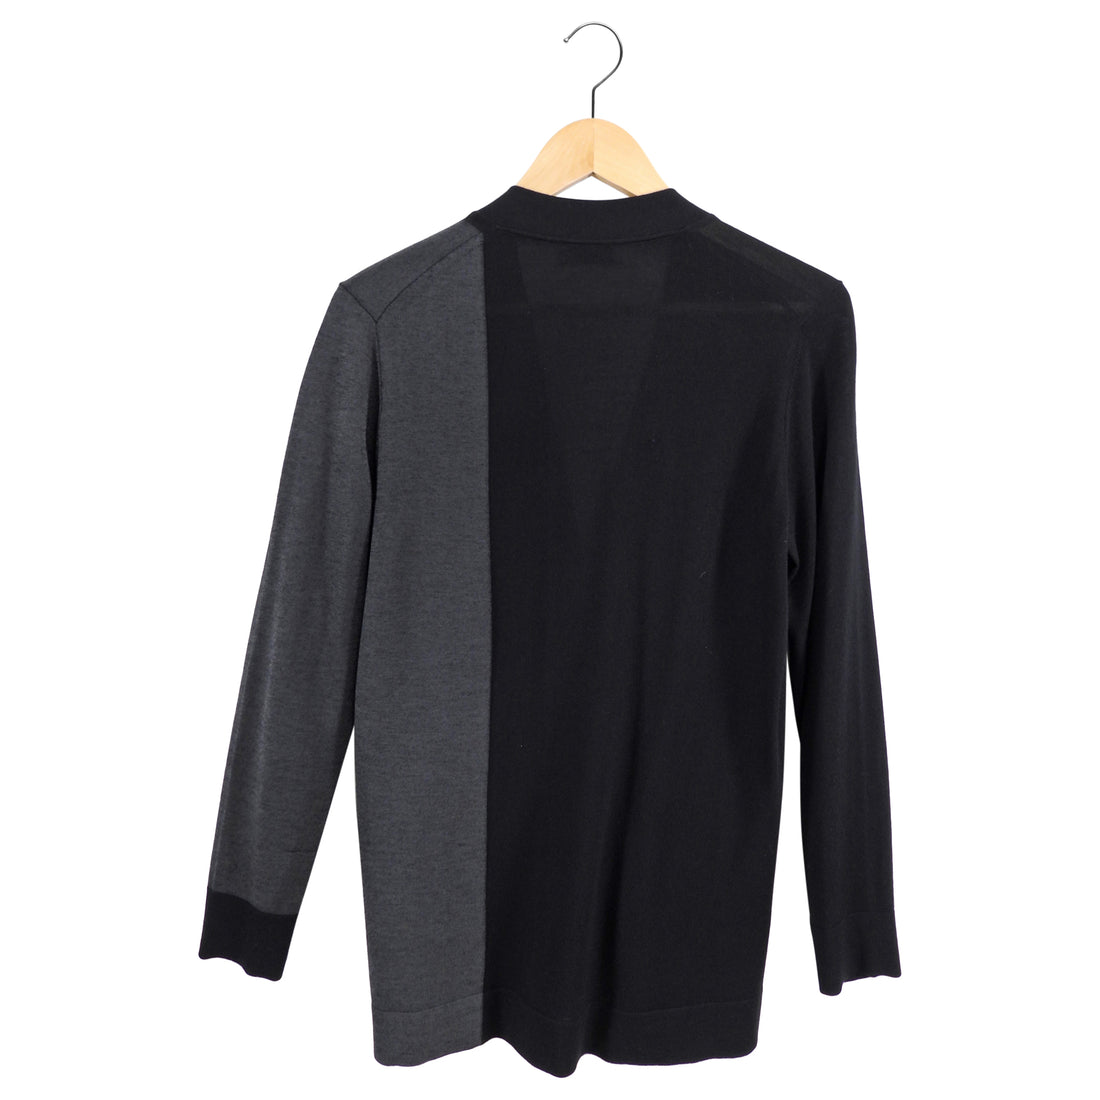 Balenciaga Black and Grey Color Block Knit Cardigan - FR38 / 6